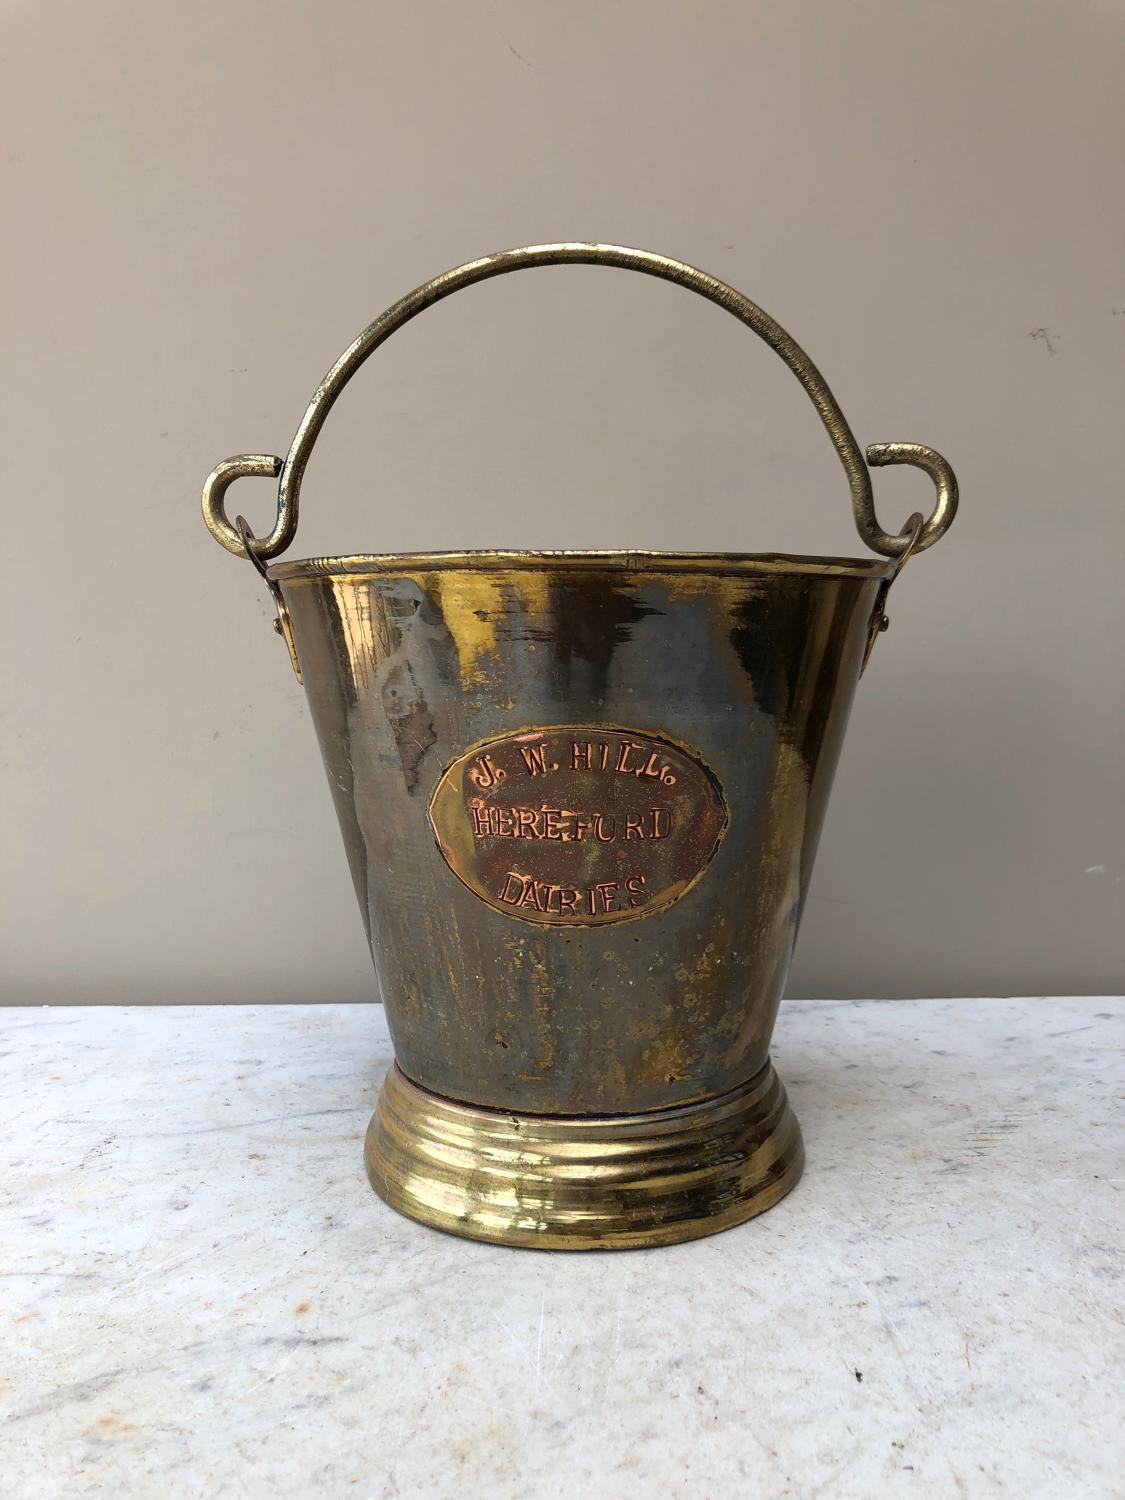 Victorian Brass Dairy Milk Pail - JW Hill Hereford Dairies